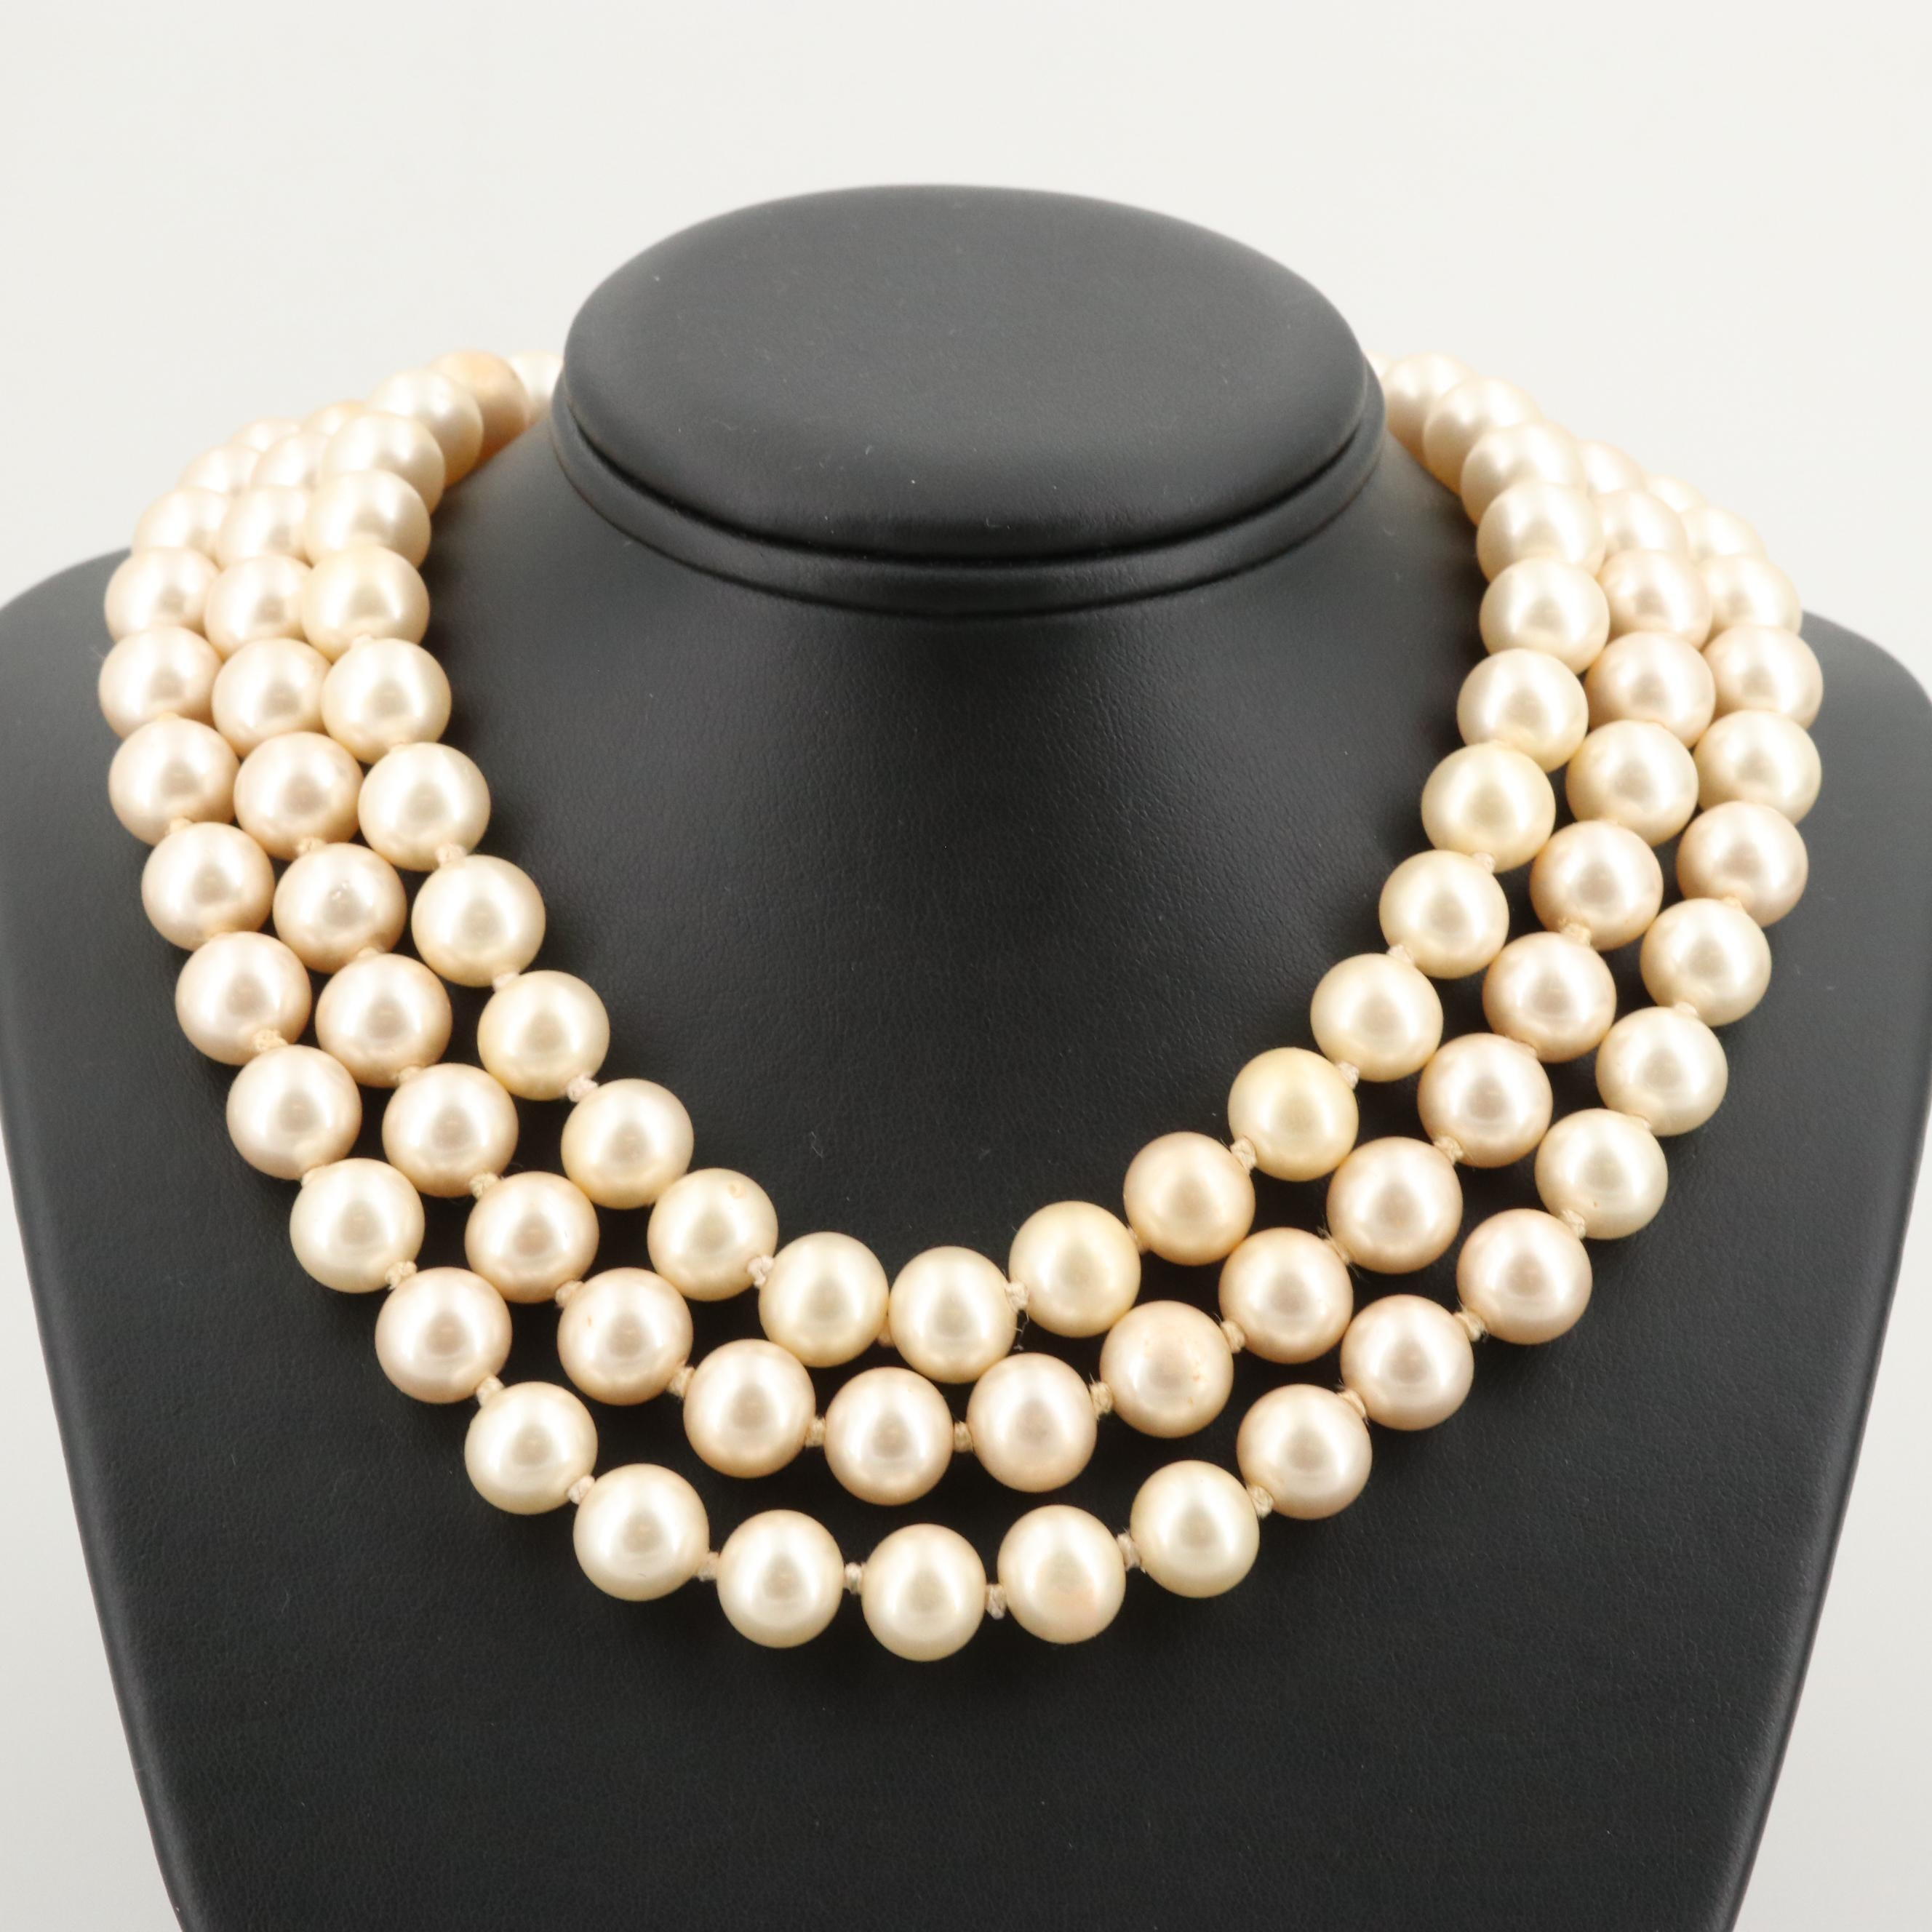 Ciner Silver Tone Triple Strand Glass and Imitation Pearl Necklace